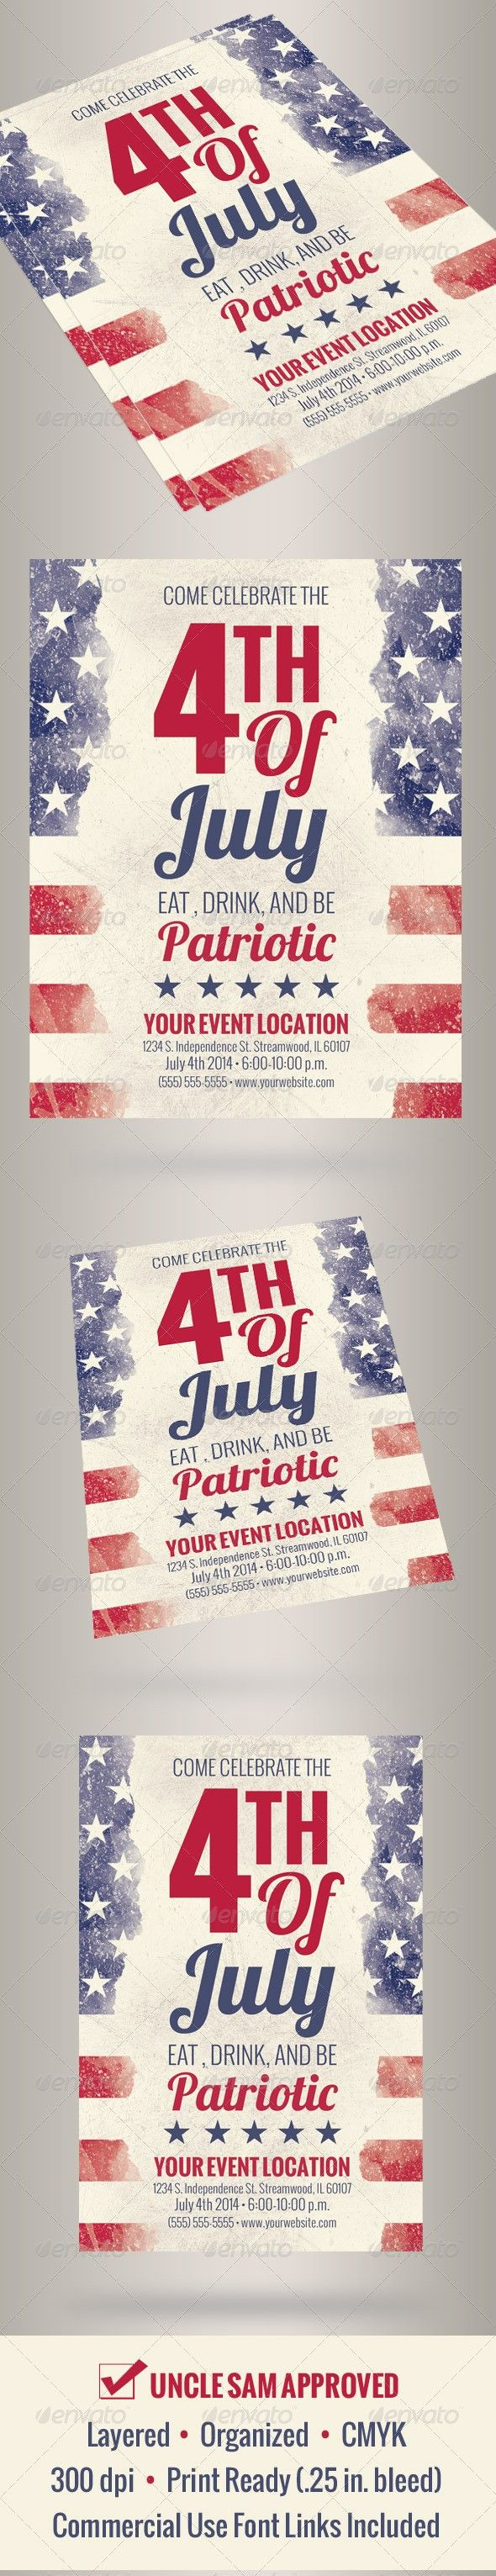 4th of july american flag blue celebration club cookout election entertainment event flag flyer holiday independence da flyers templates